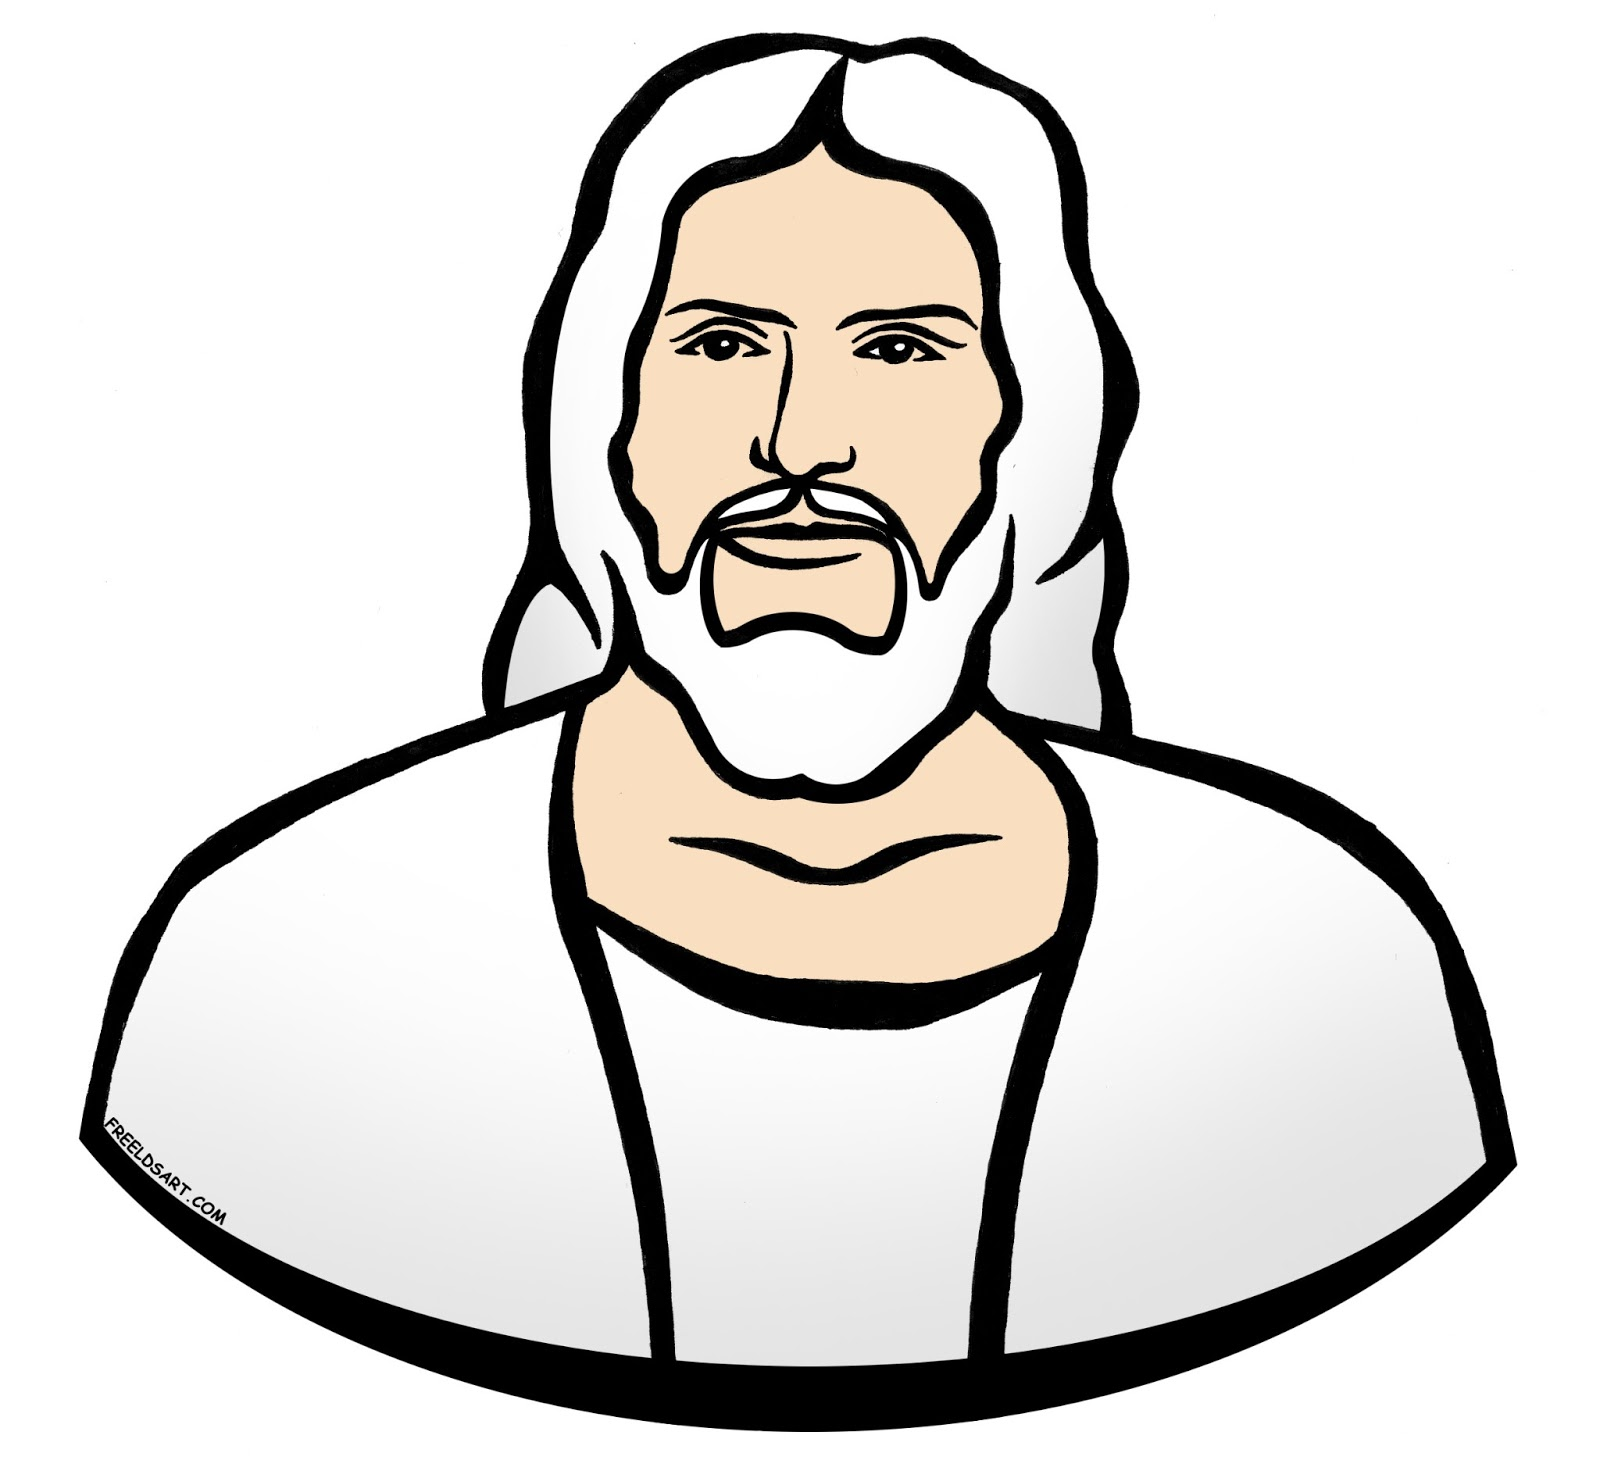 With god clipart picture freeuse library God Clipart | Clipart Panda - Free Clipart Images picture freeuse library